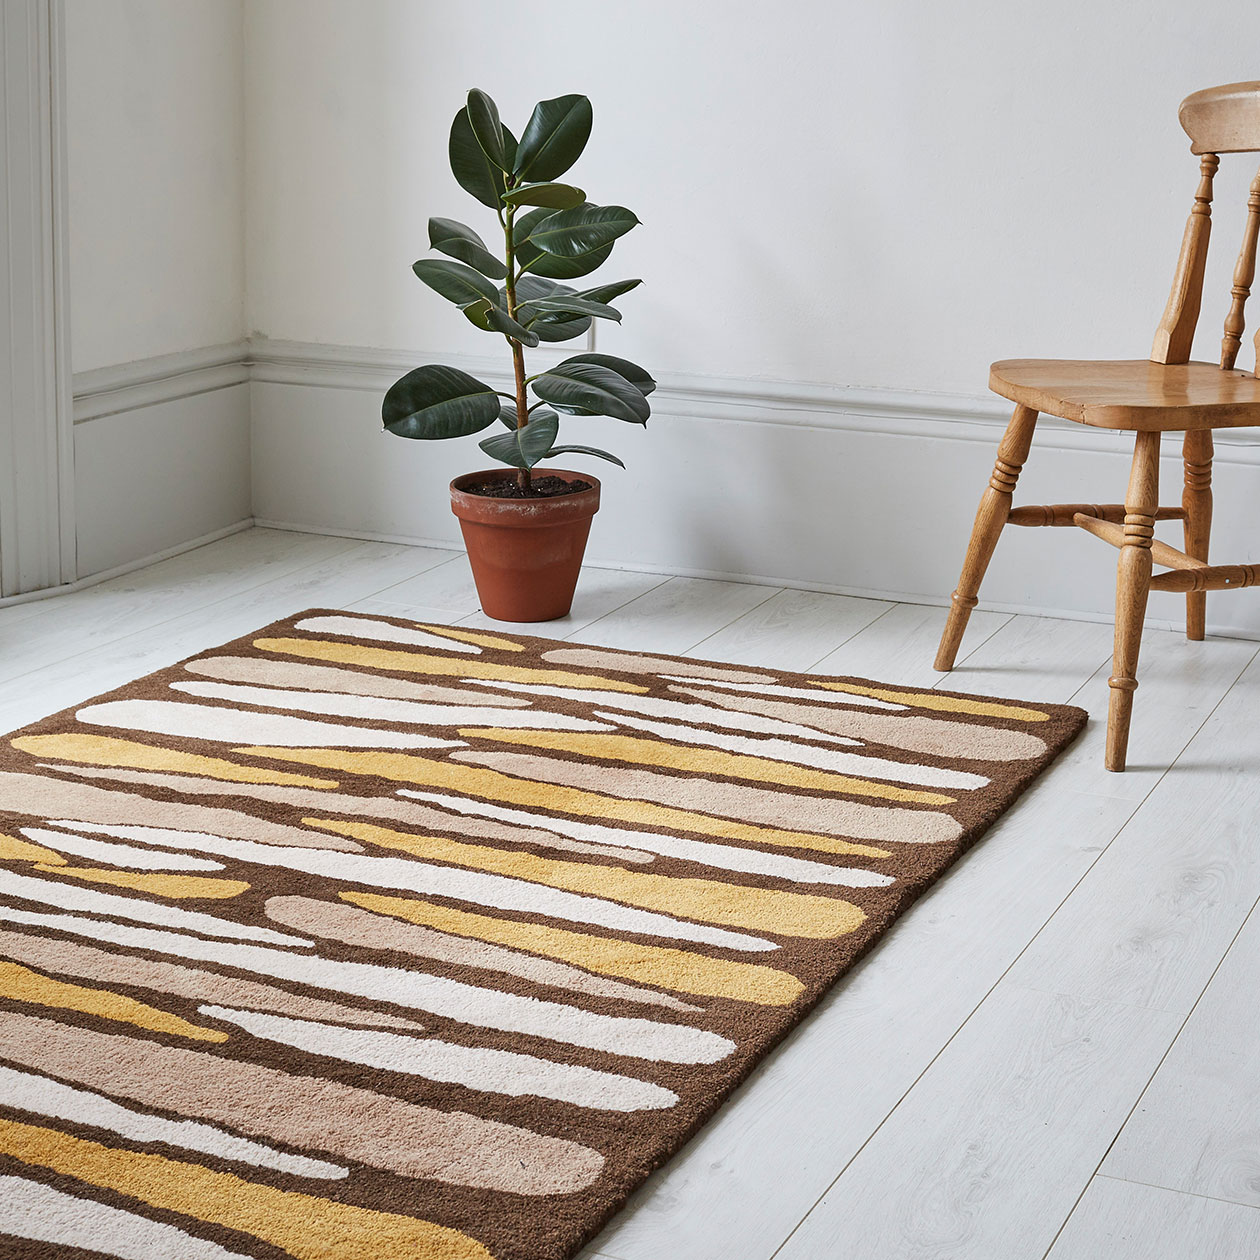 Statement Designer Rugs from Studio Element